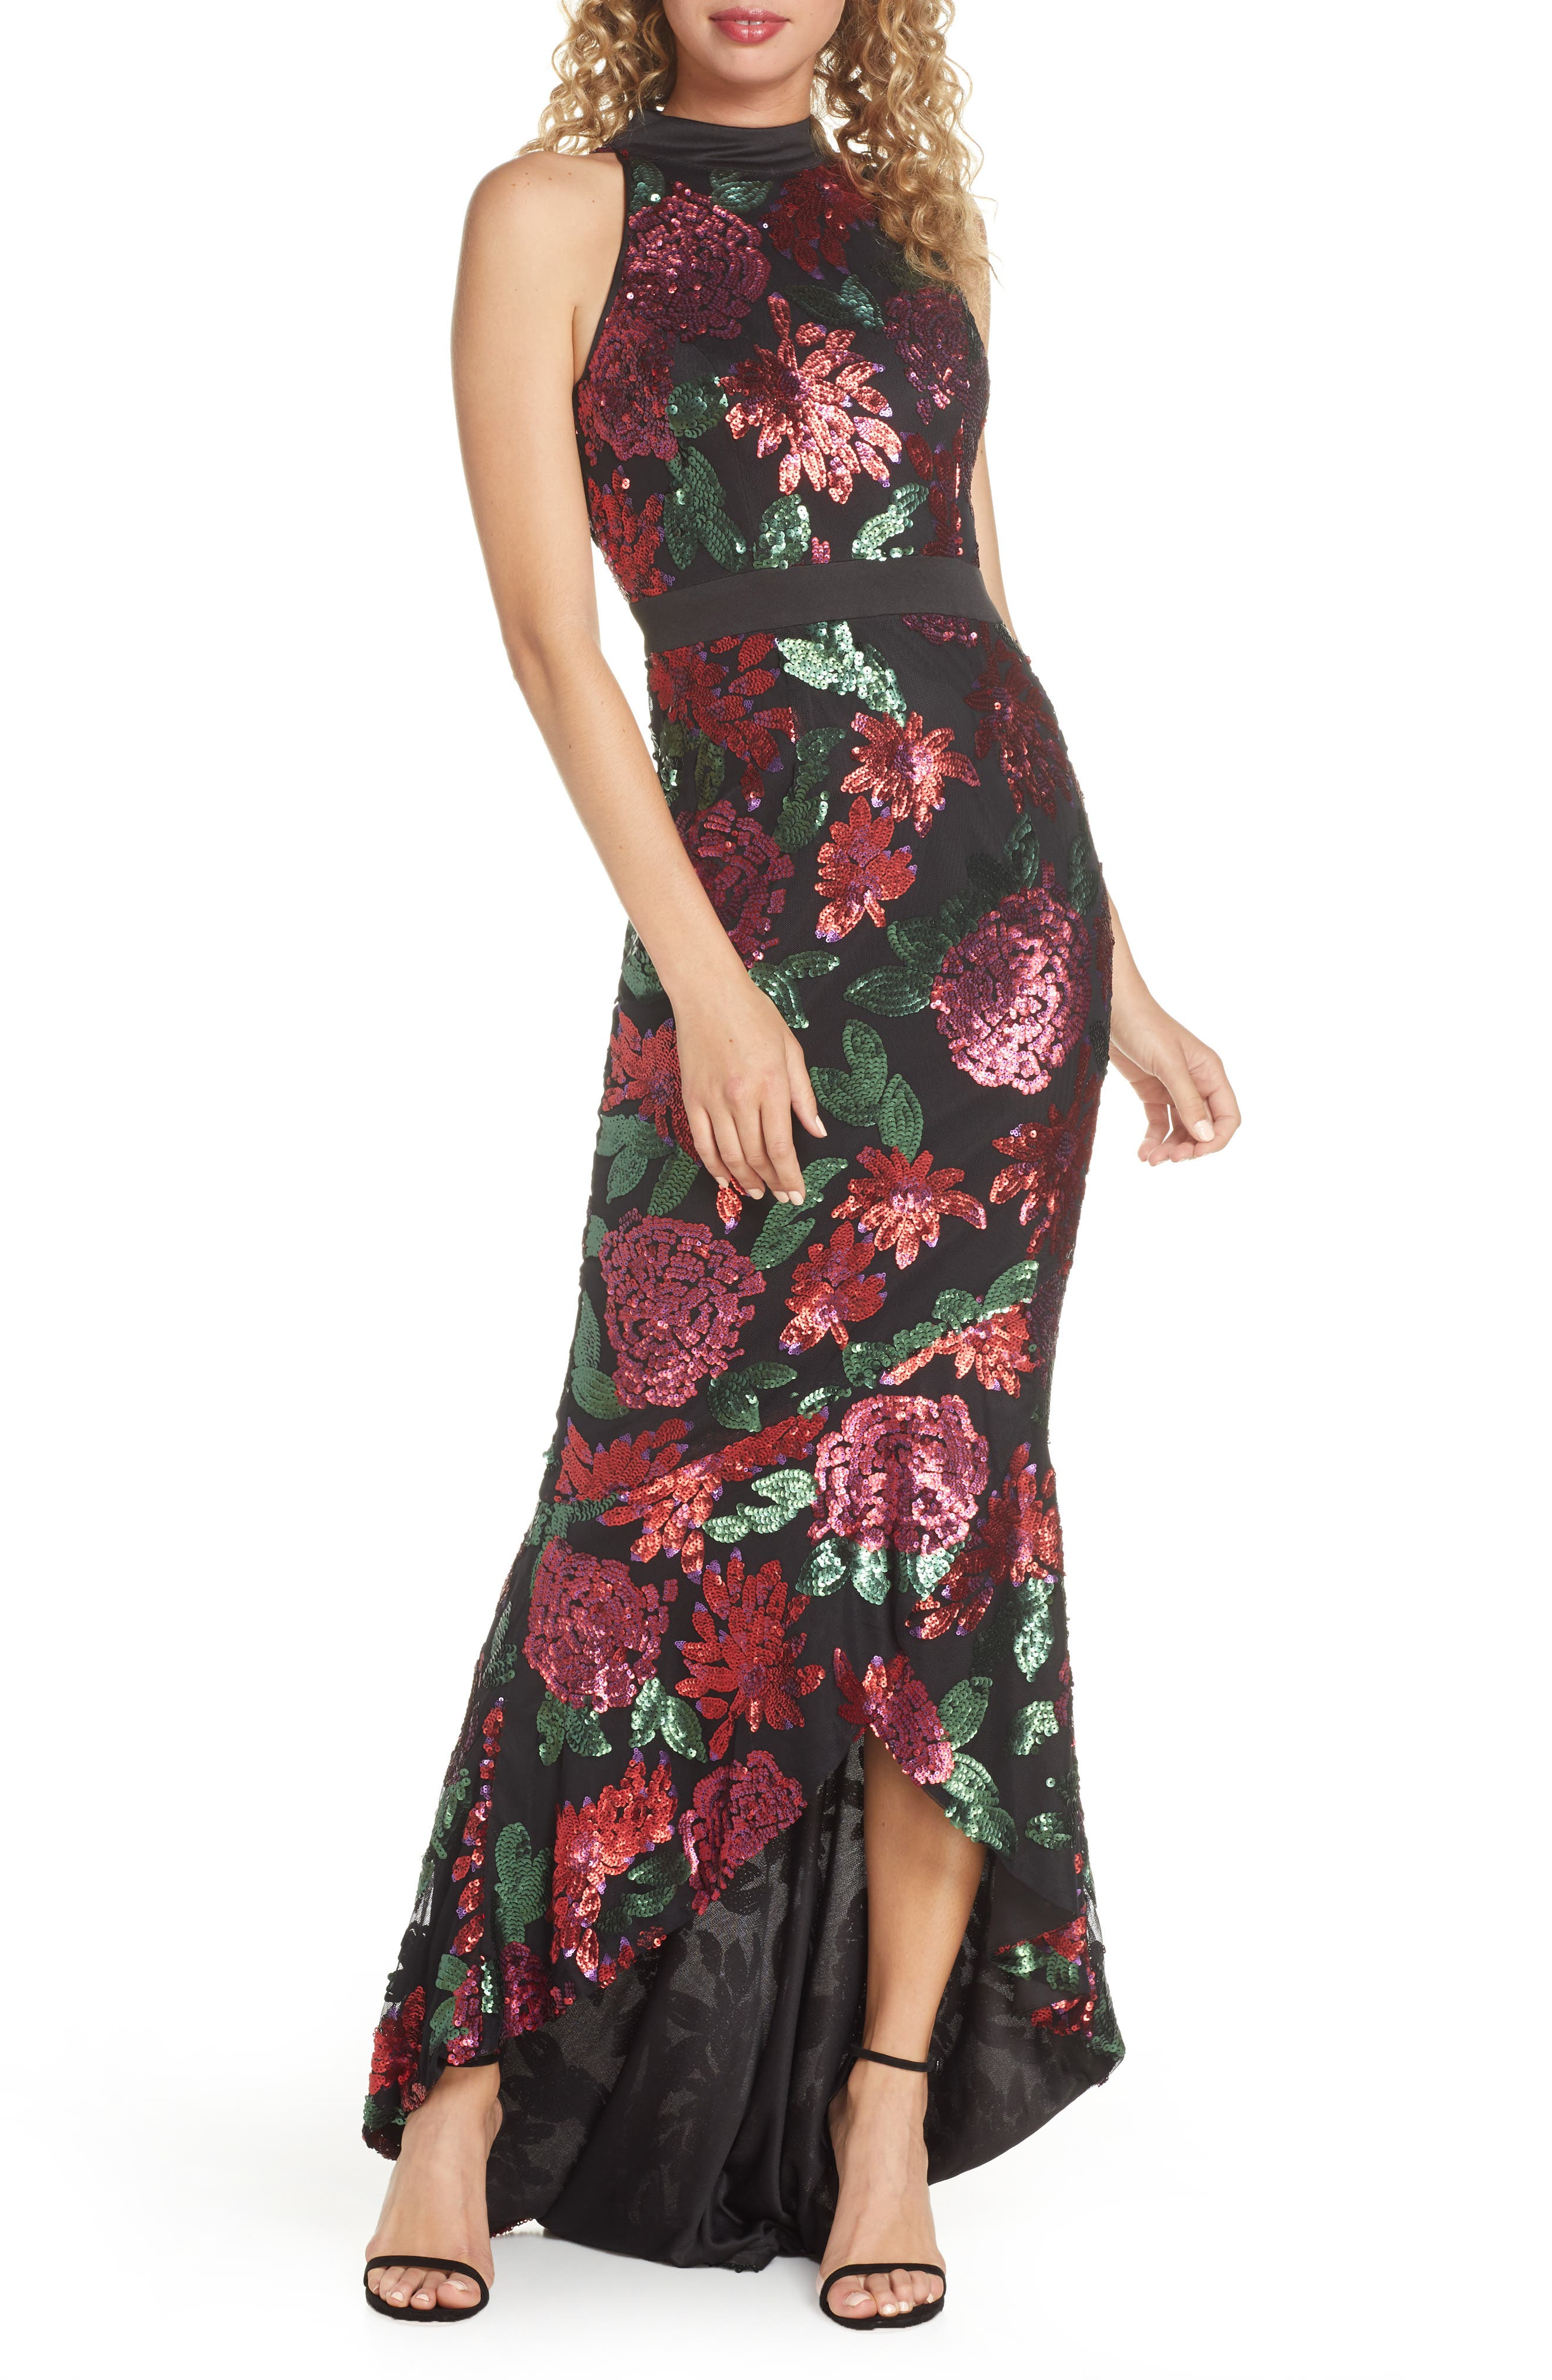 Vintage Evening Dresses and Formal Evening Gowns Womens Chi Chi London Santana Sequin Floral Highlow Evening Gown $140.00 AT vintagedancer.com